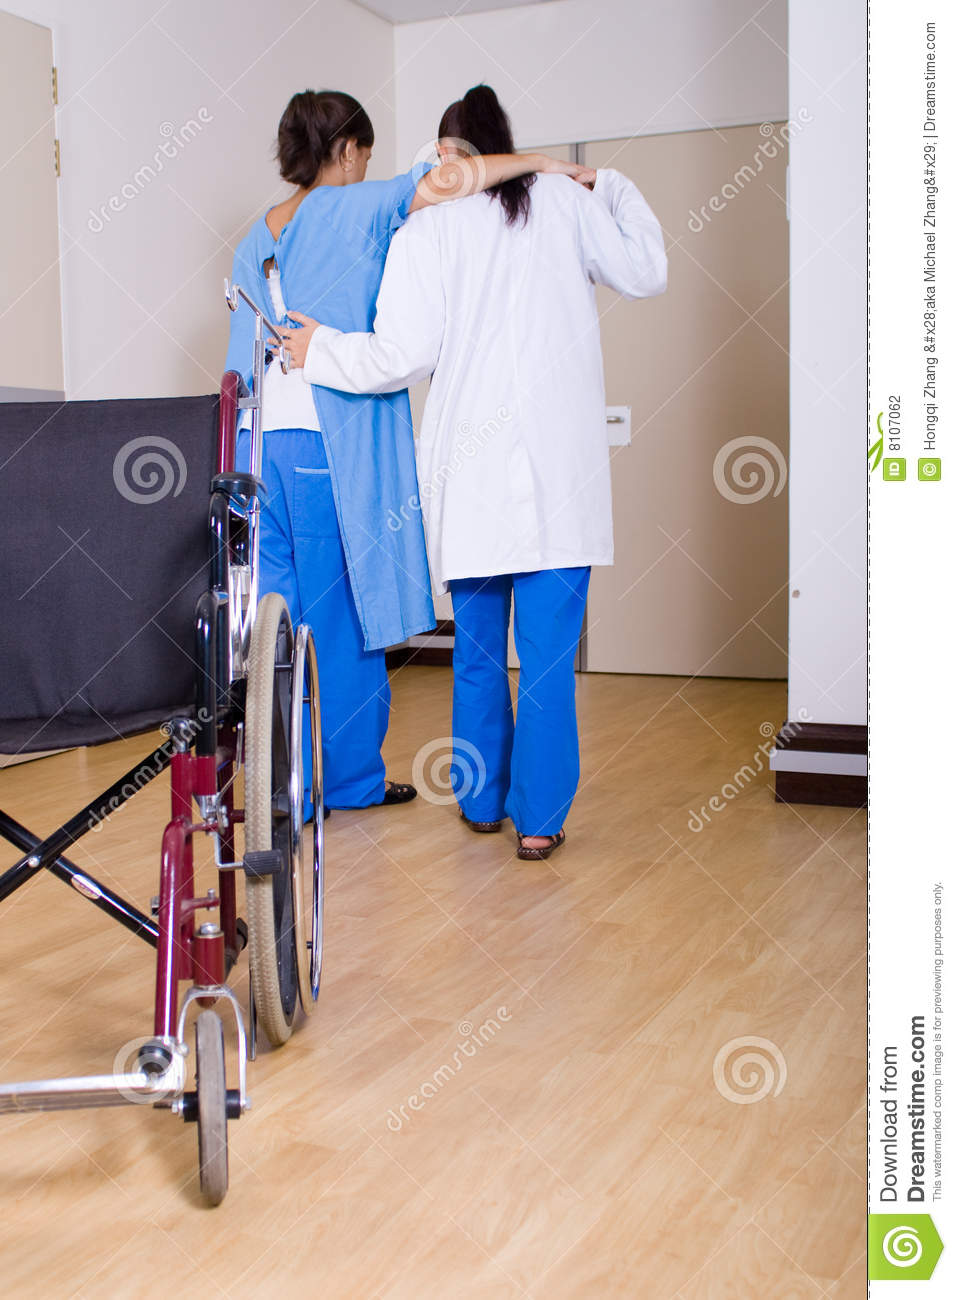 wheel chair prices lexington mission style dining chairs doctor helping patient stock photography - image: 8107062